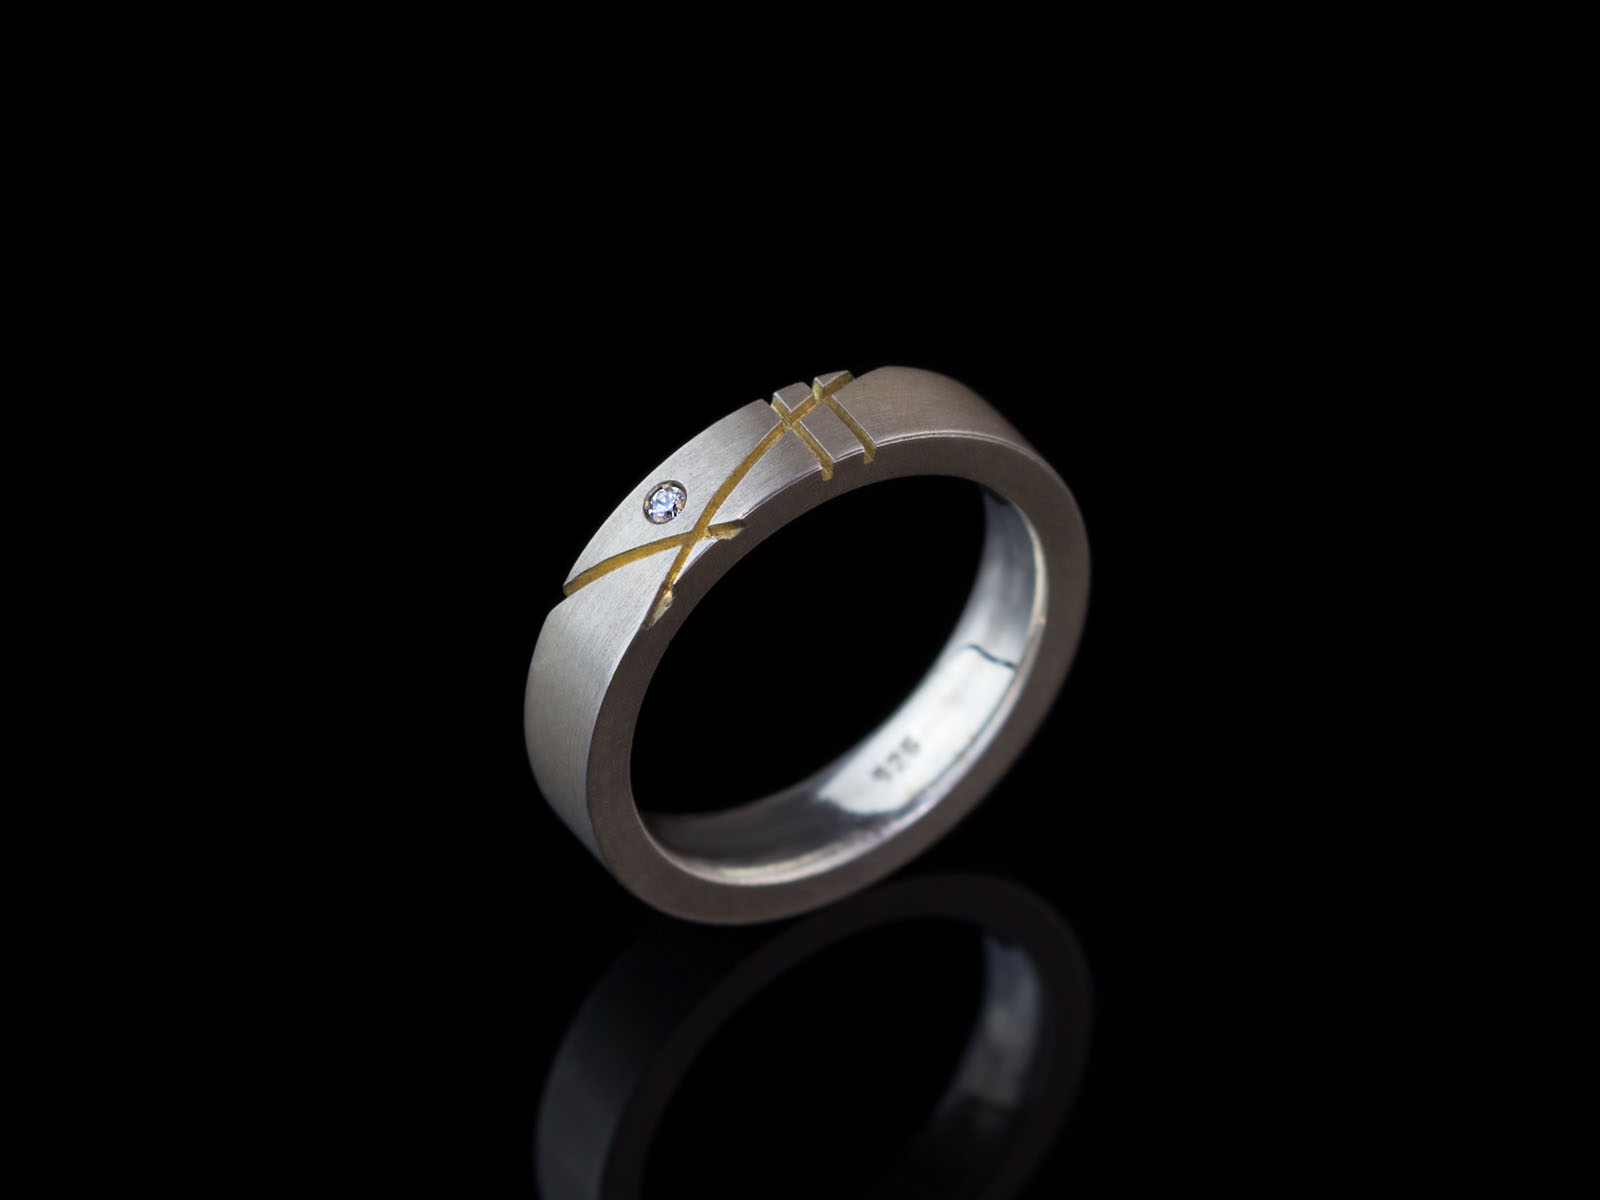 Bauhaus Zirconia Solid Sterling Silver Ring With Gold